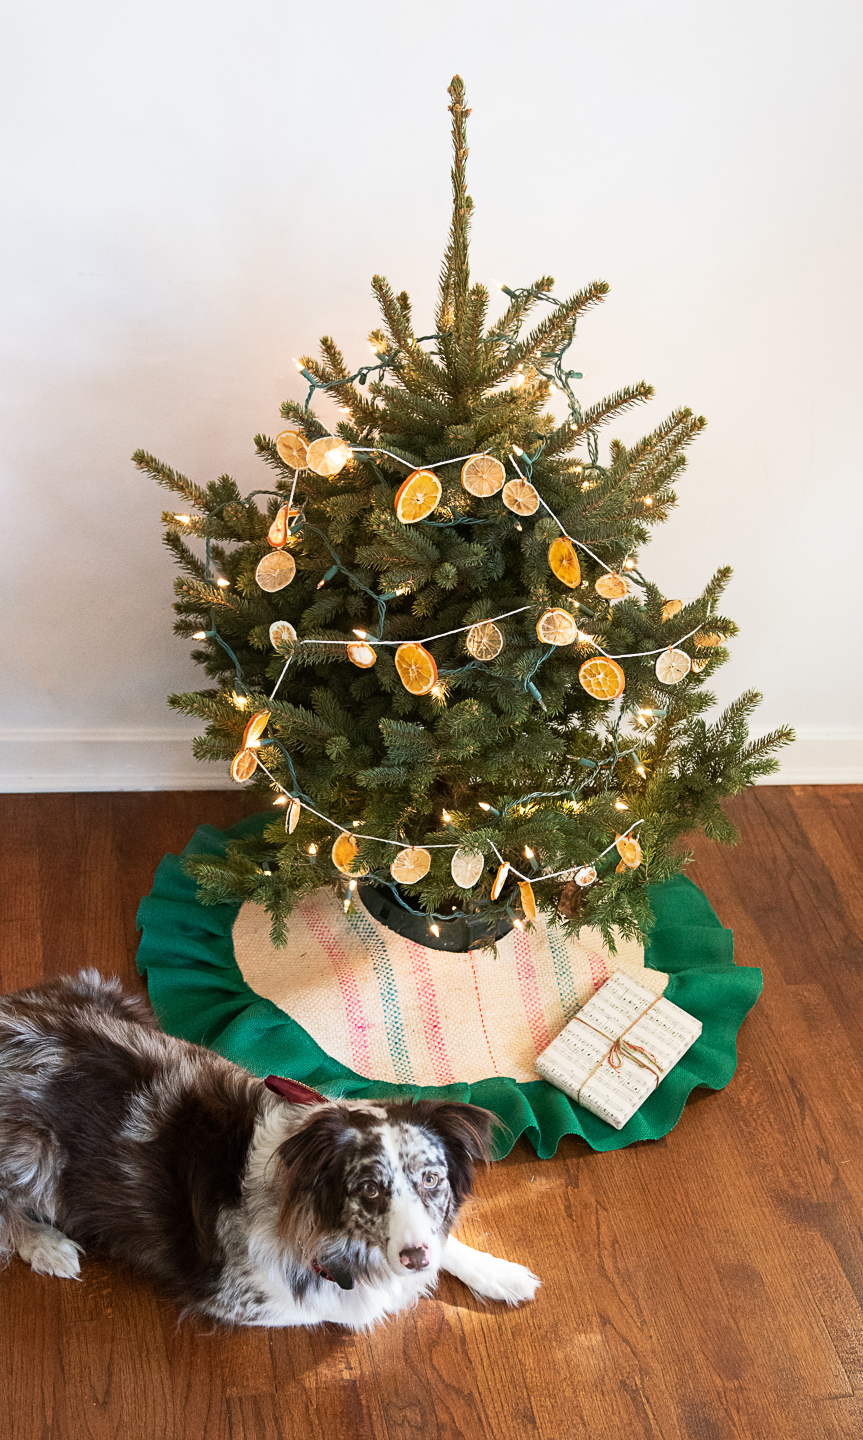 Diy Tabletop Christmas Tree Skirt From An Upcycled Burlap Coffee Sack Compost And Cava